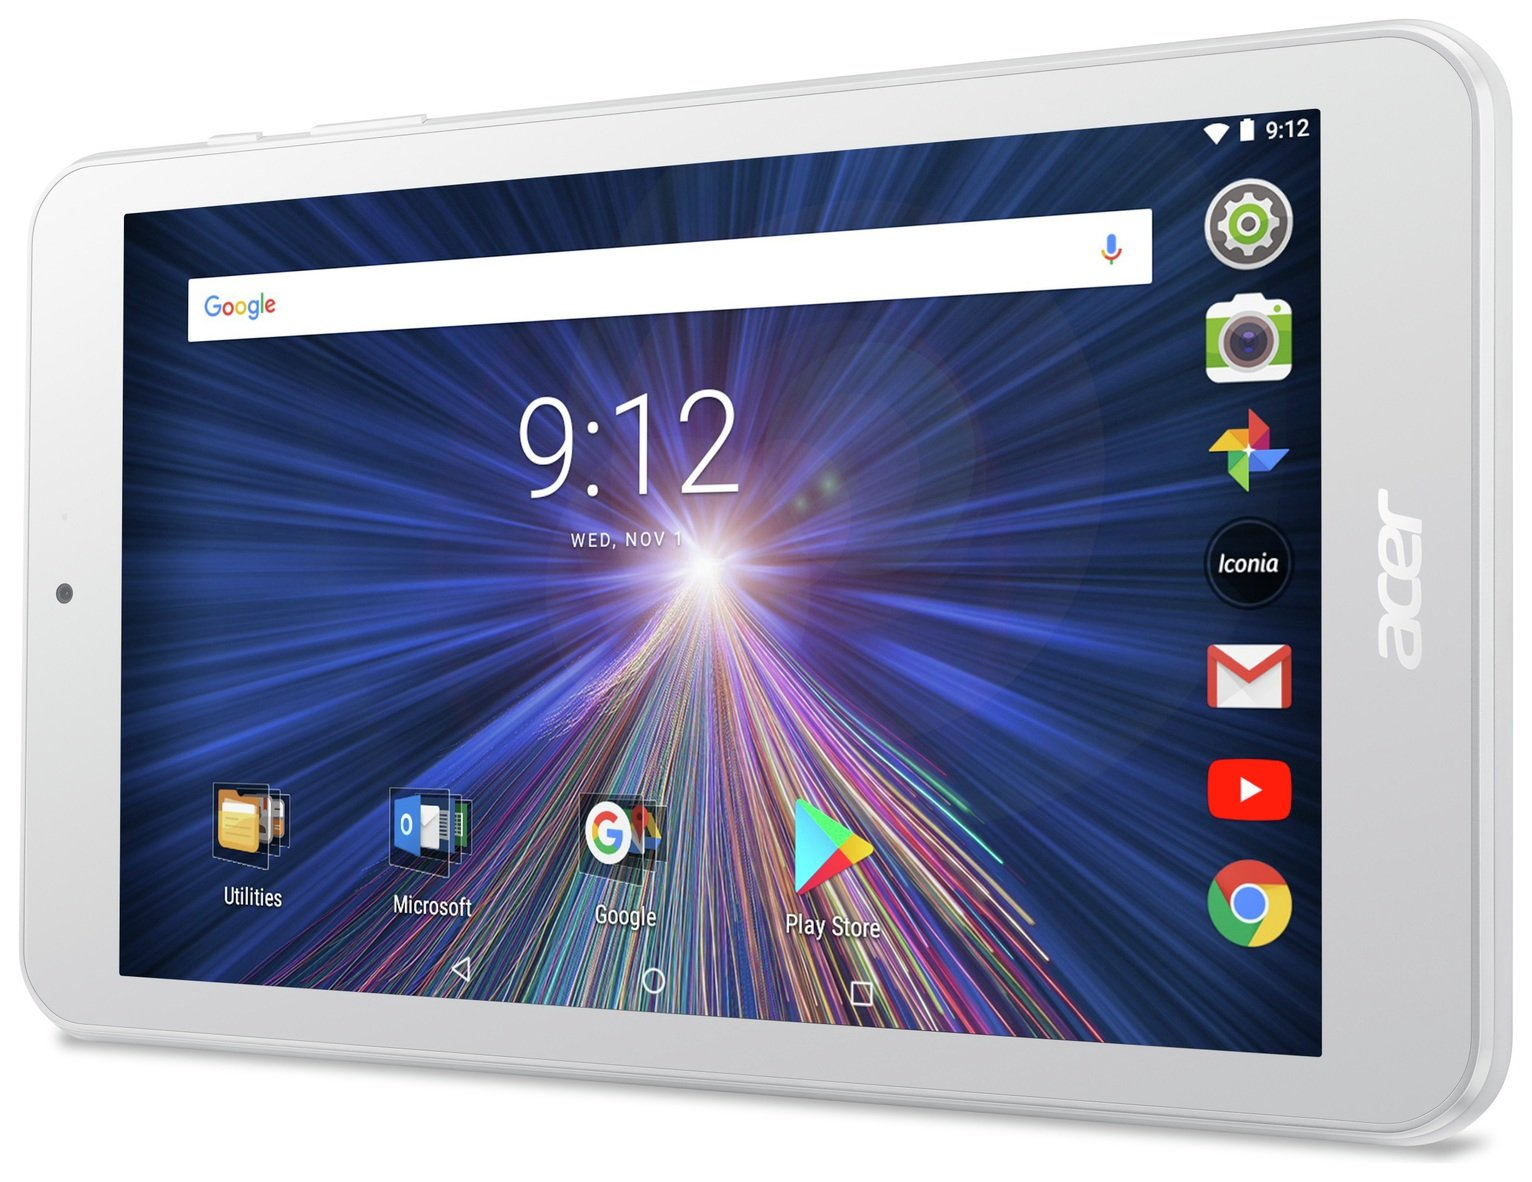 Acer Iconia One 8 8-Inch Tablet-PC - (White) (Intel Celeron Processor, 1 GB RAM, 16 GB eMMC, Graphics, Android 7.0) Best Price and Cheapest